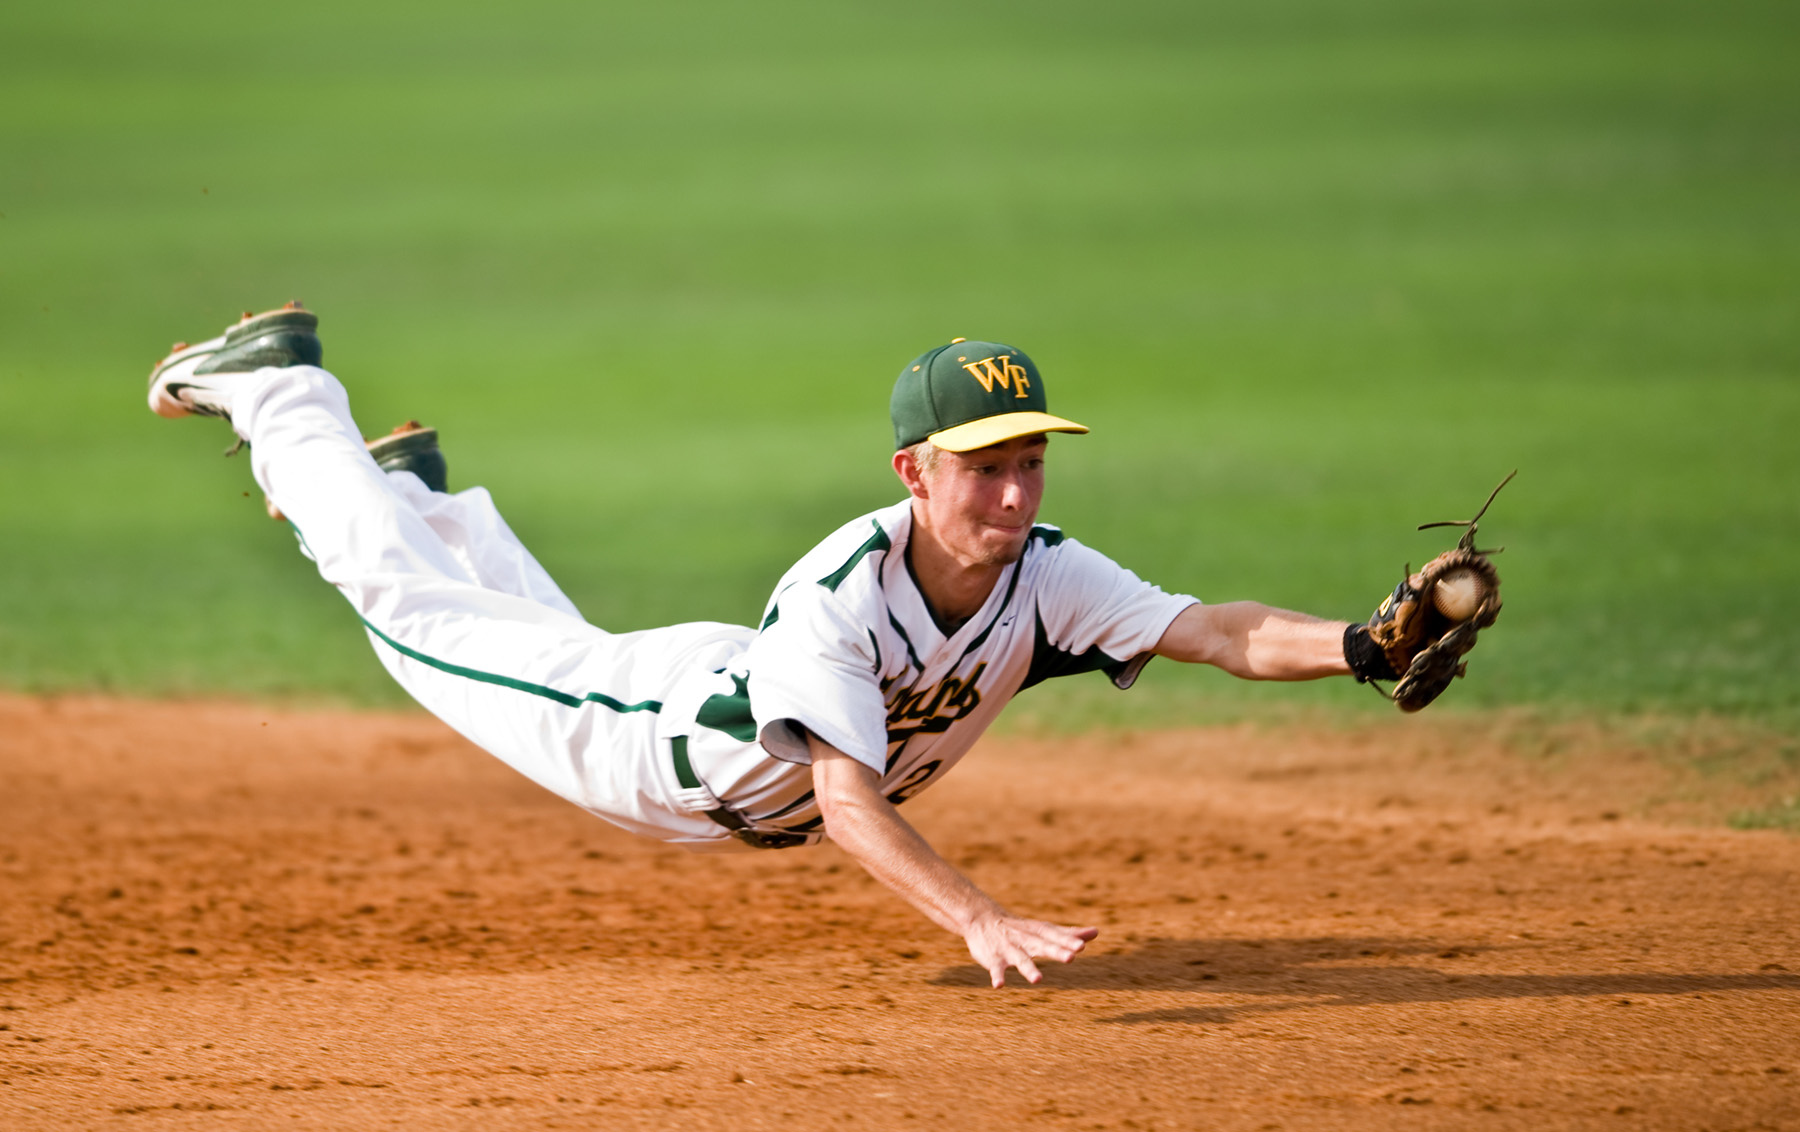 First Place | SportsAndrew Dye, Winston-Salem JournalWest Forsyth High School senior second baseman Jarrett Corder (2) makes a diving catch off of a hit from Richmond High School senior second baseman Mike Rush (1) on Friday, June 6, 2014 in Greensboro, N.C. Rush was tagged out at first to end the top of the fourth inning.